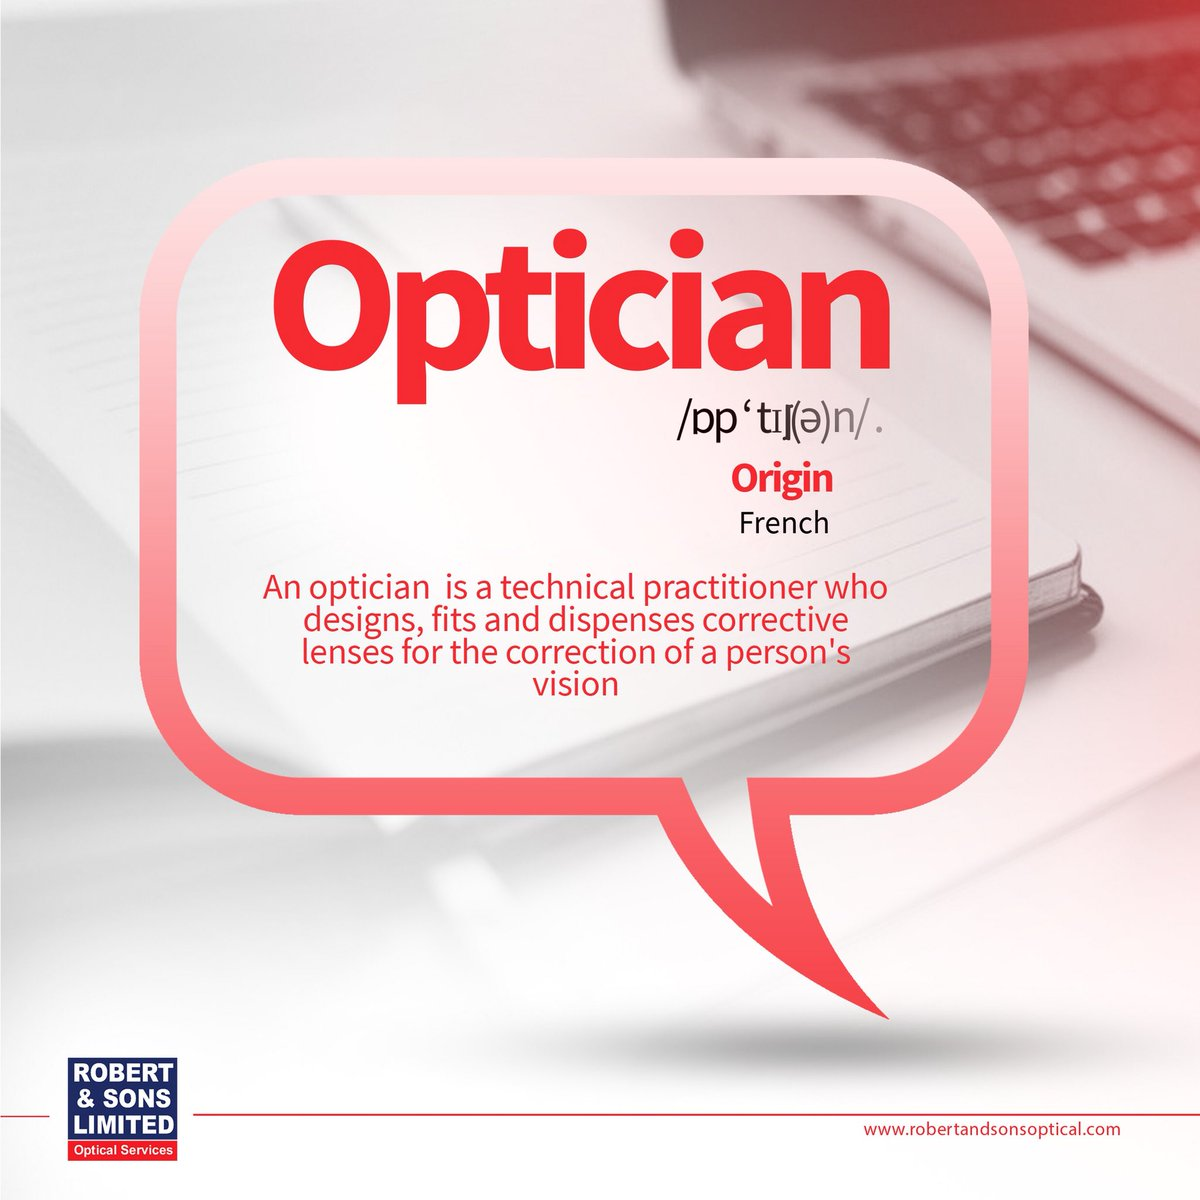 Robertsons Optical On Twitter An Optician Is A Technician Trained